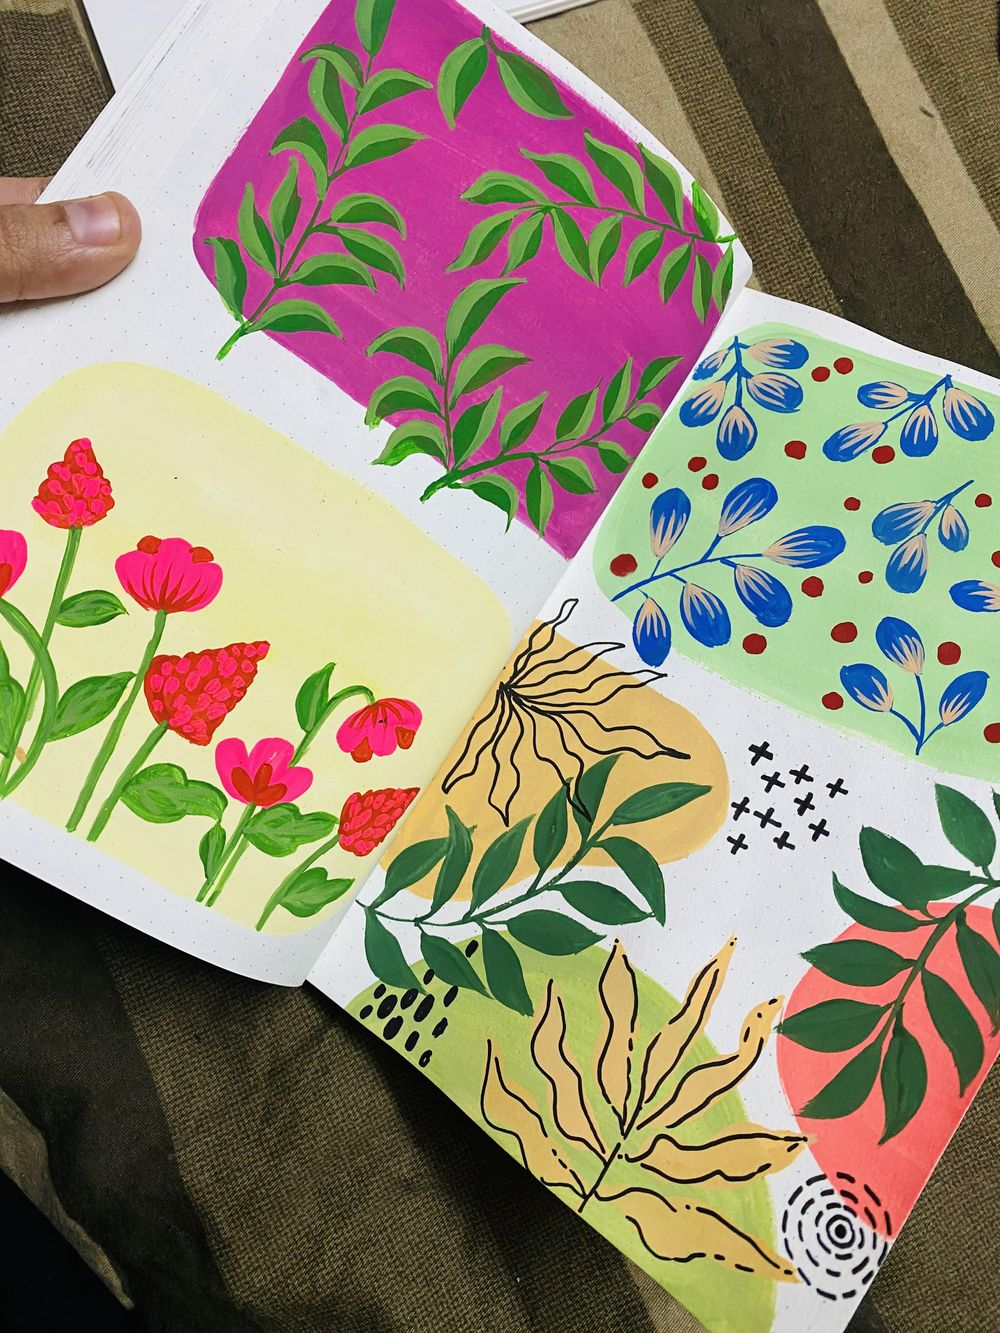 Pattern Painting with Goauche - image 2 - student project